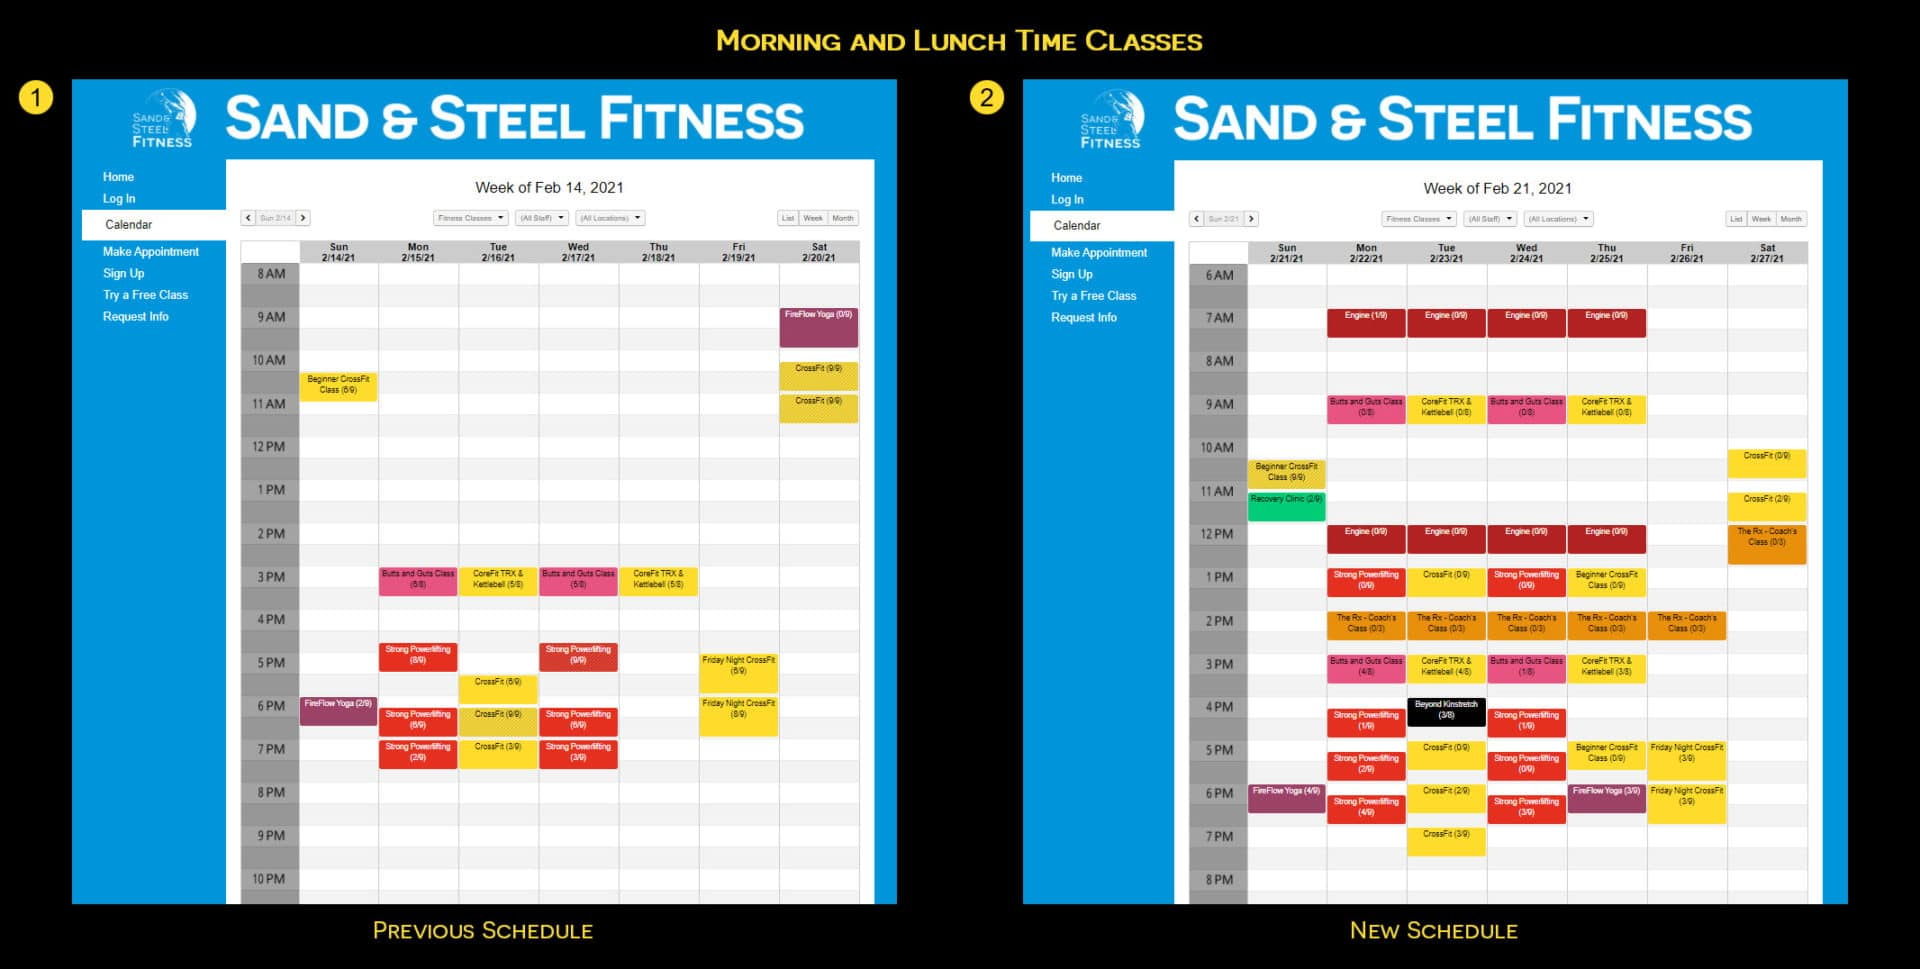 Class Schedule Before and After